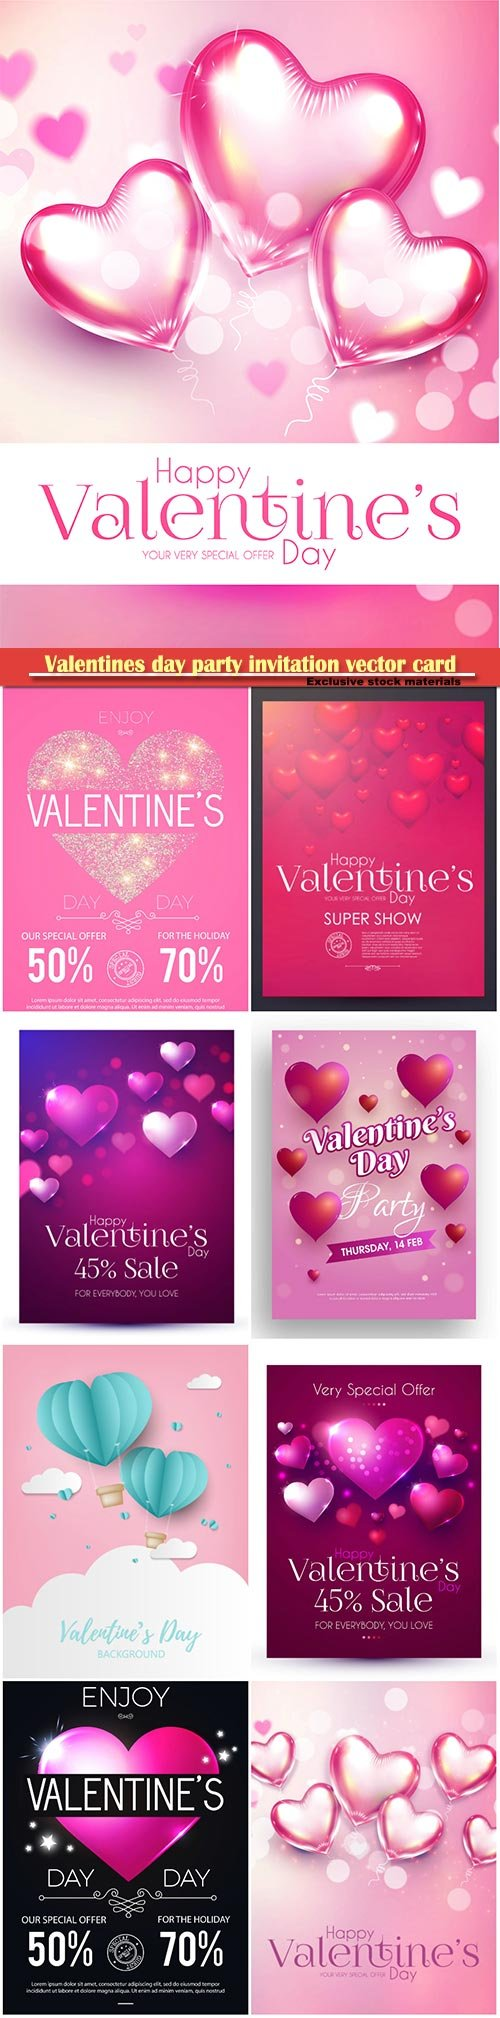 Valentines day party invitation vector card # 43